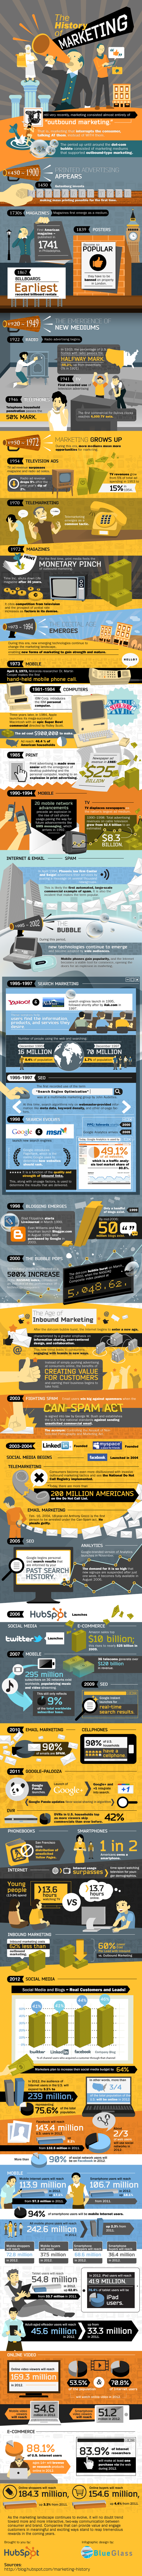 Hubspot, The History of Marketing